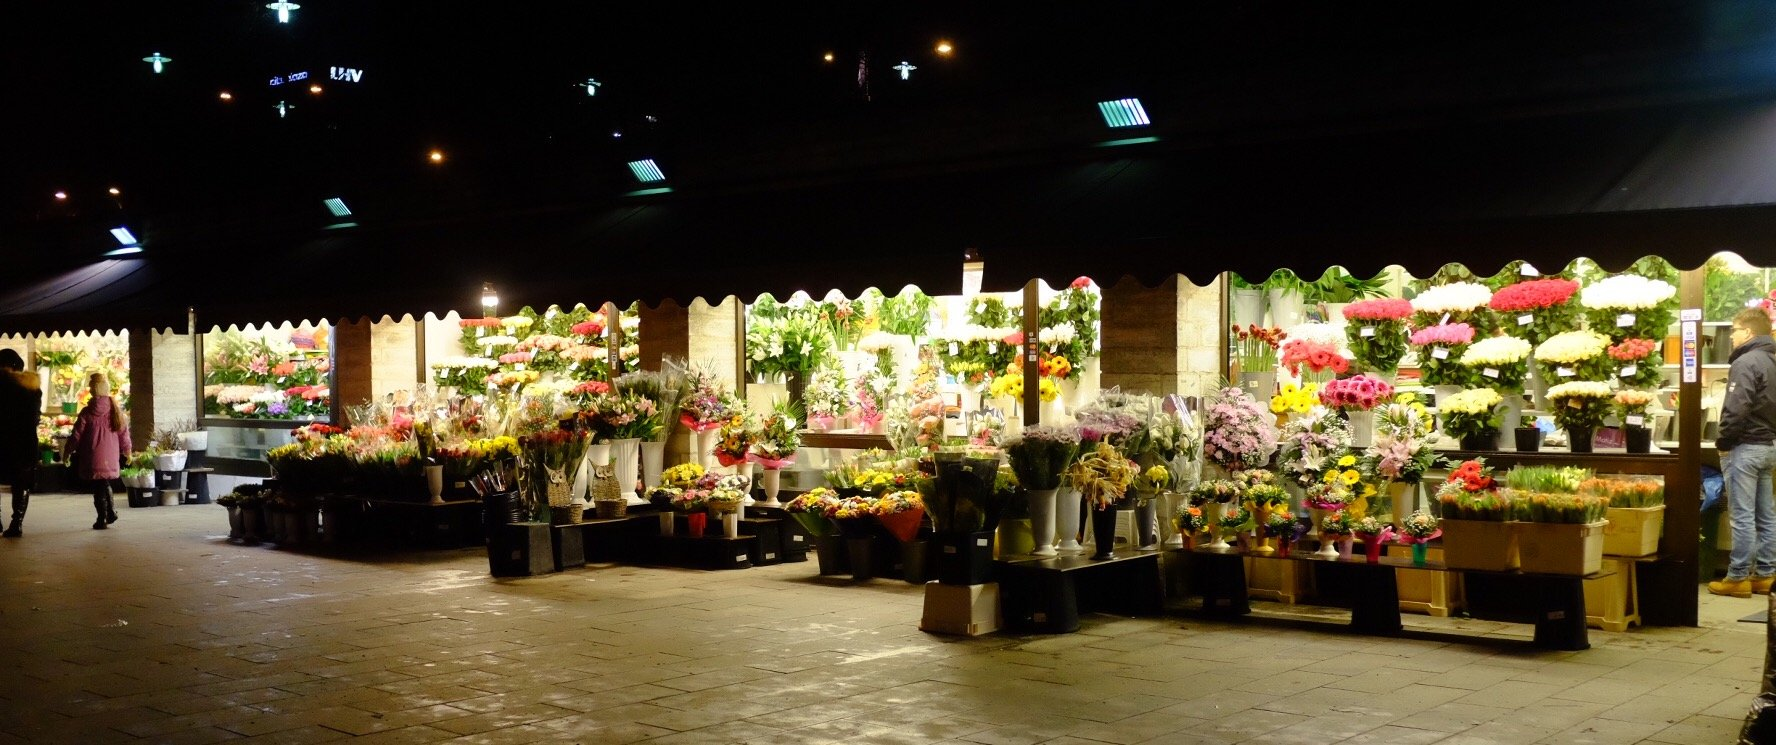 Flowershops in front of the gates of Tallinn